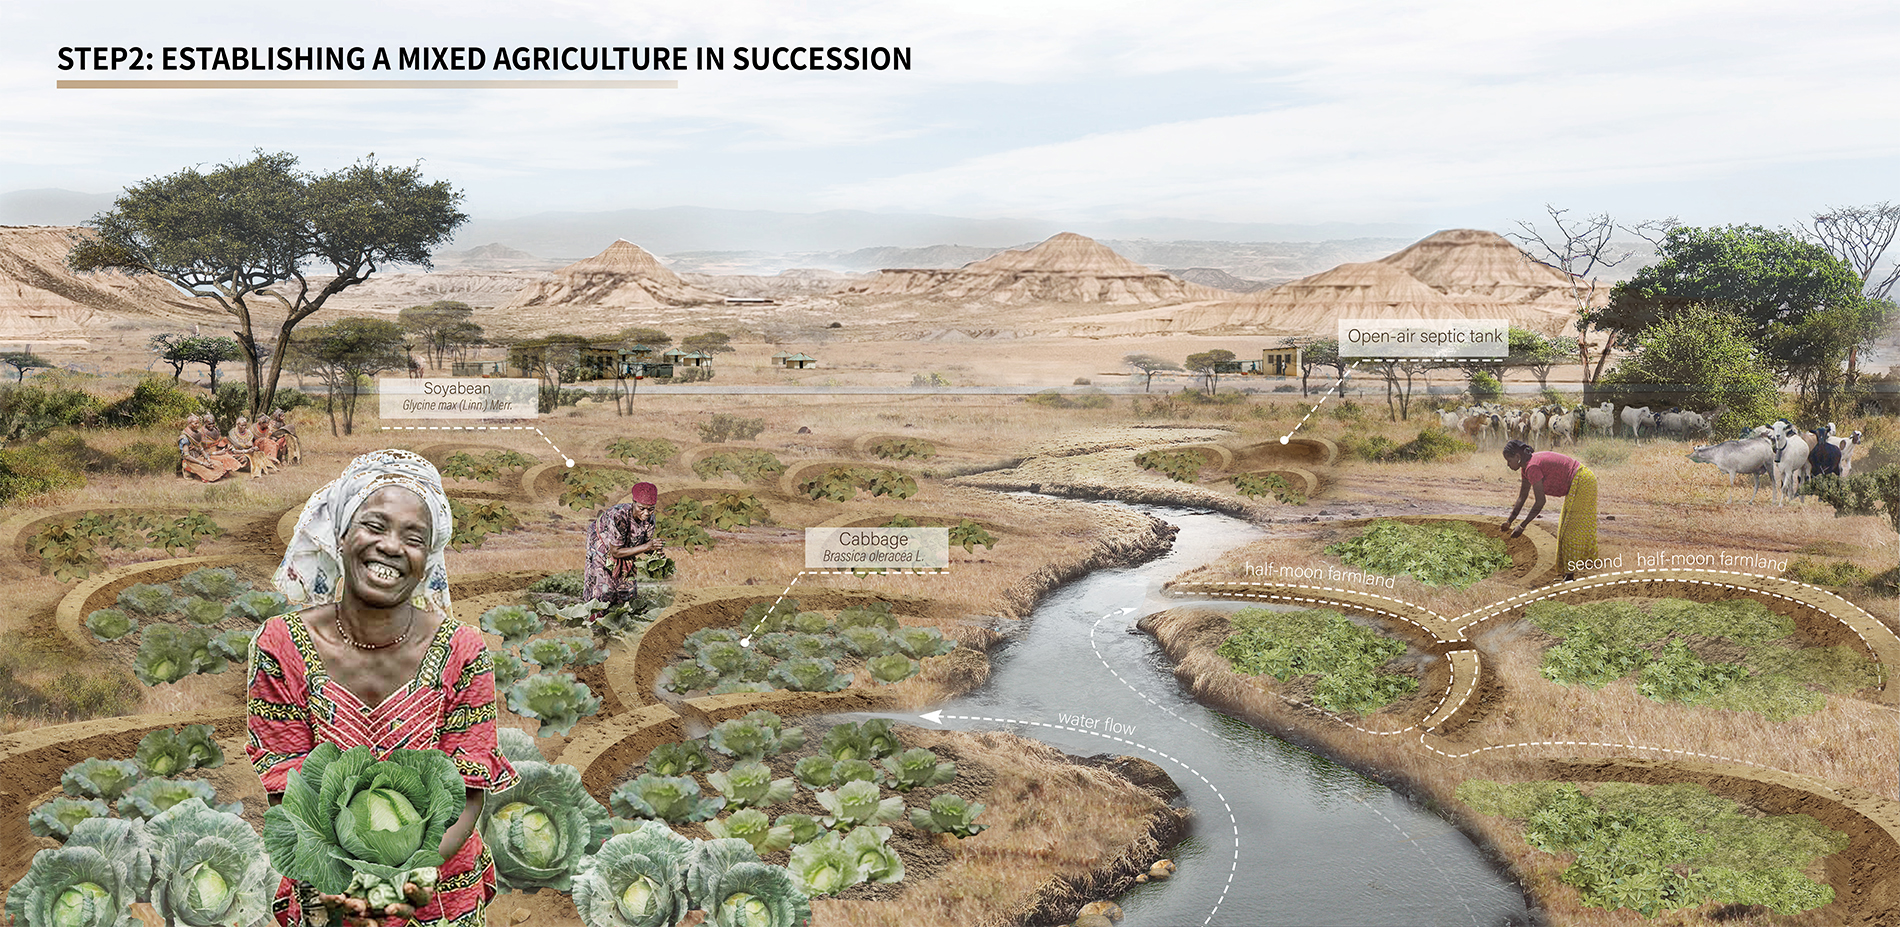 STEP2:ESTABLISHING A MIXED AGRICULTURE IN SUCCESSION